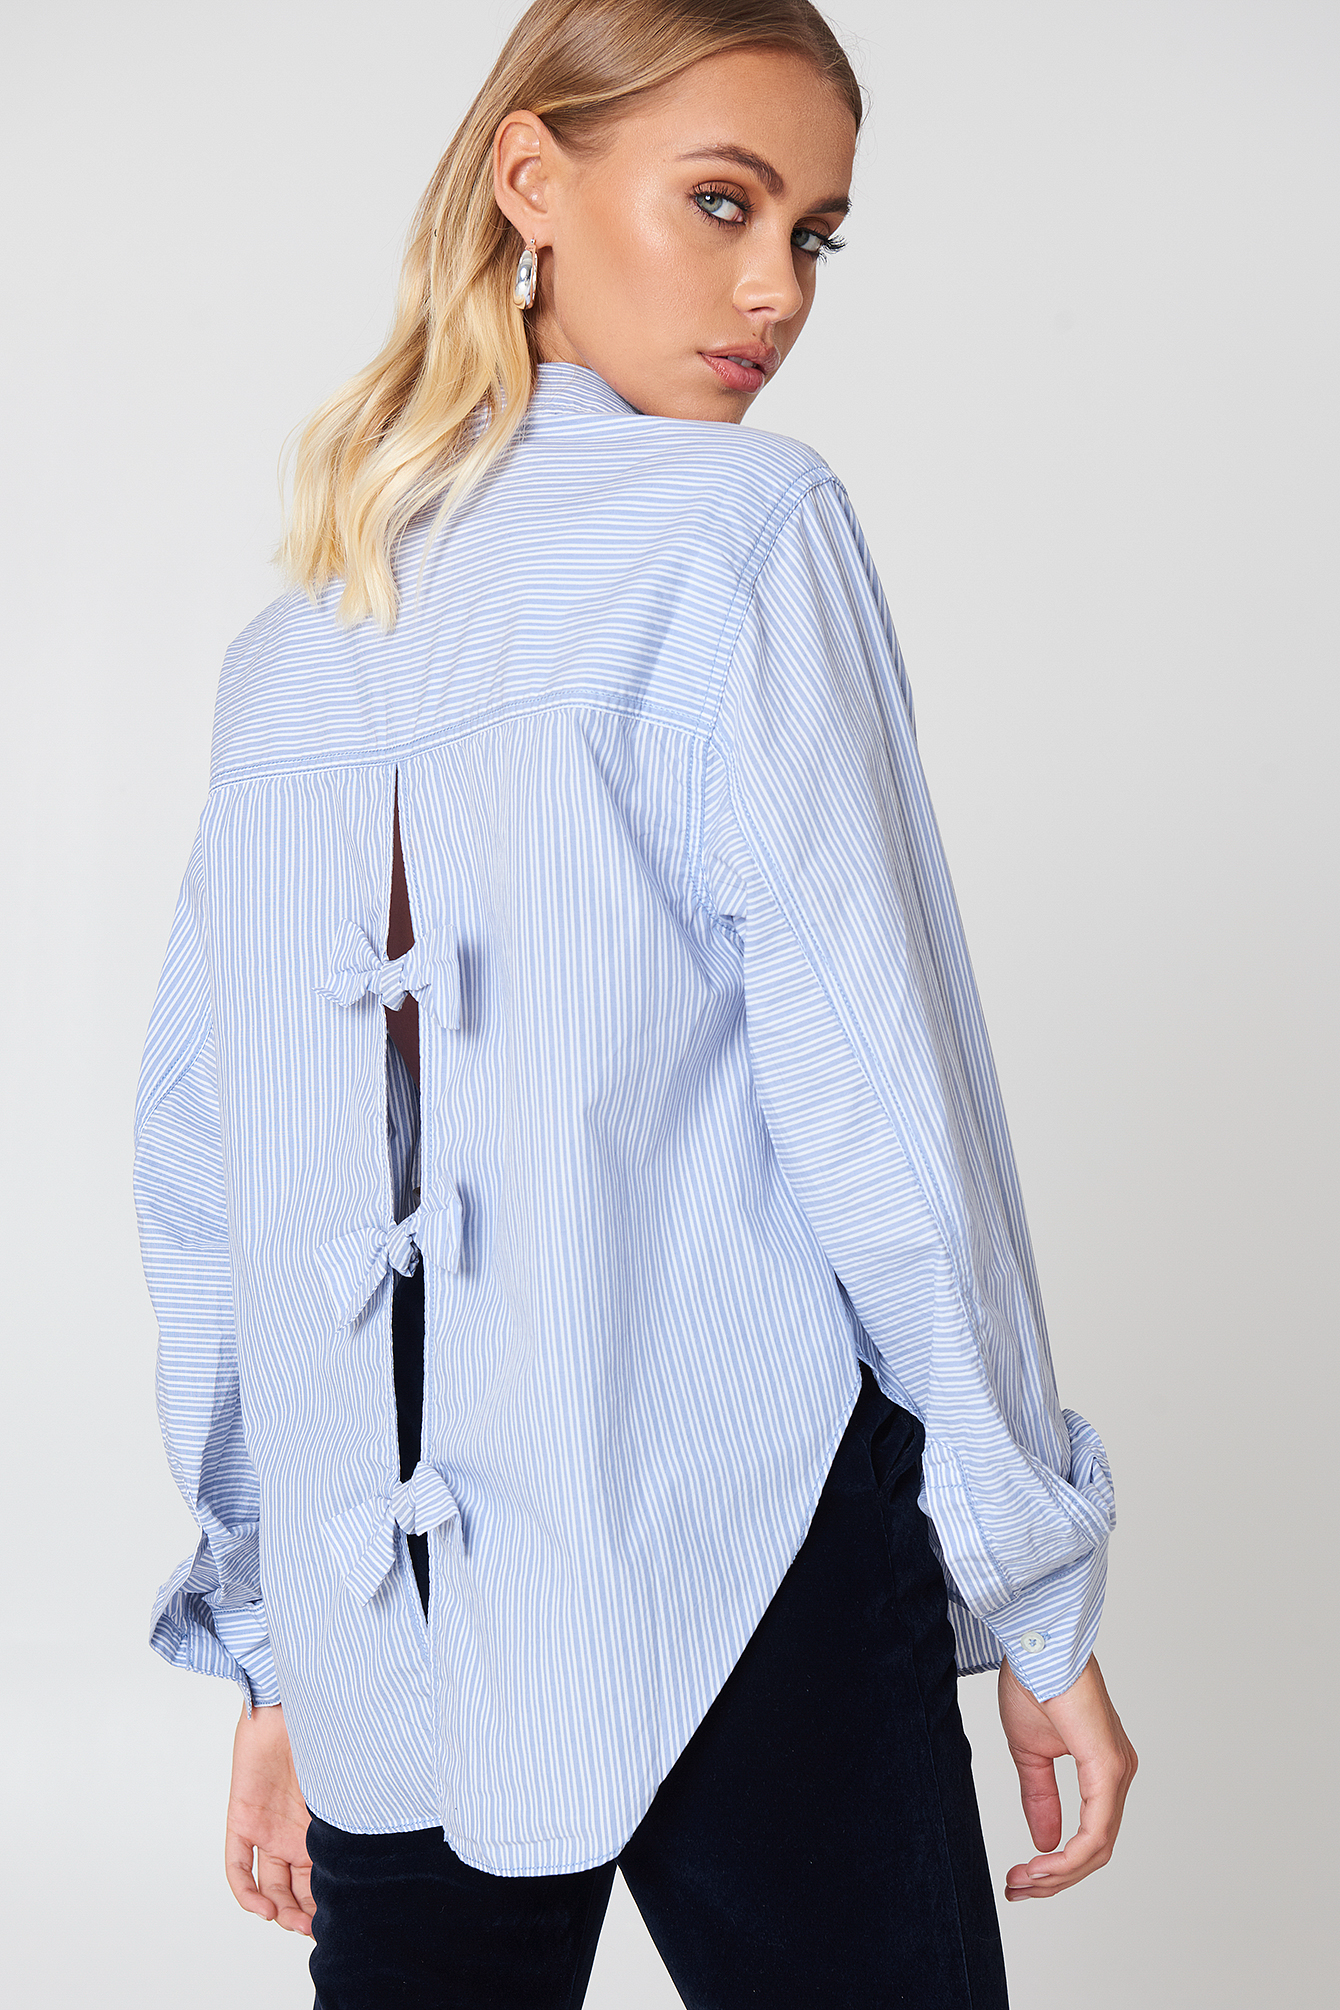 Tie It In A Bow Shirt NA-KD.COM